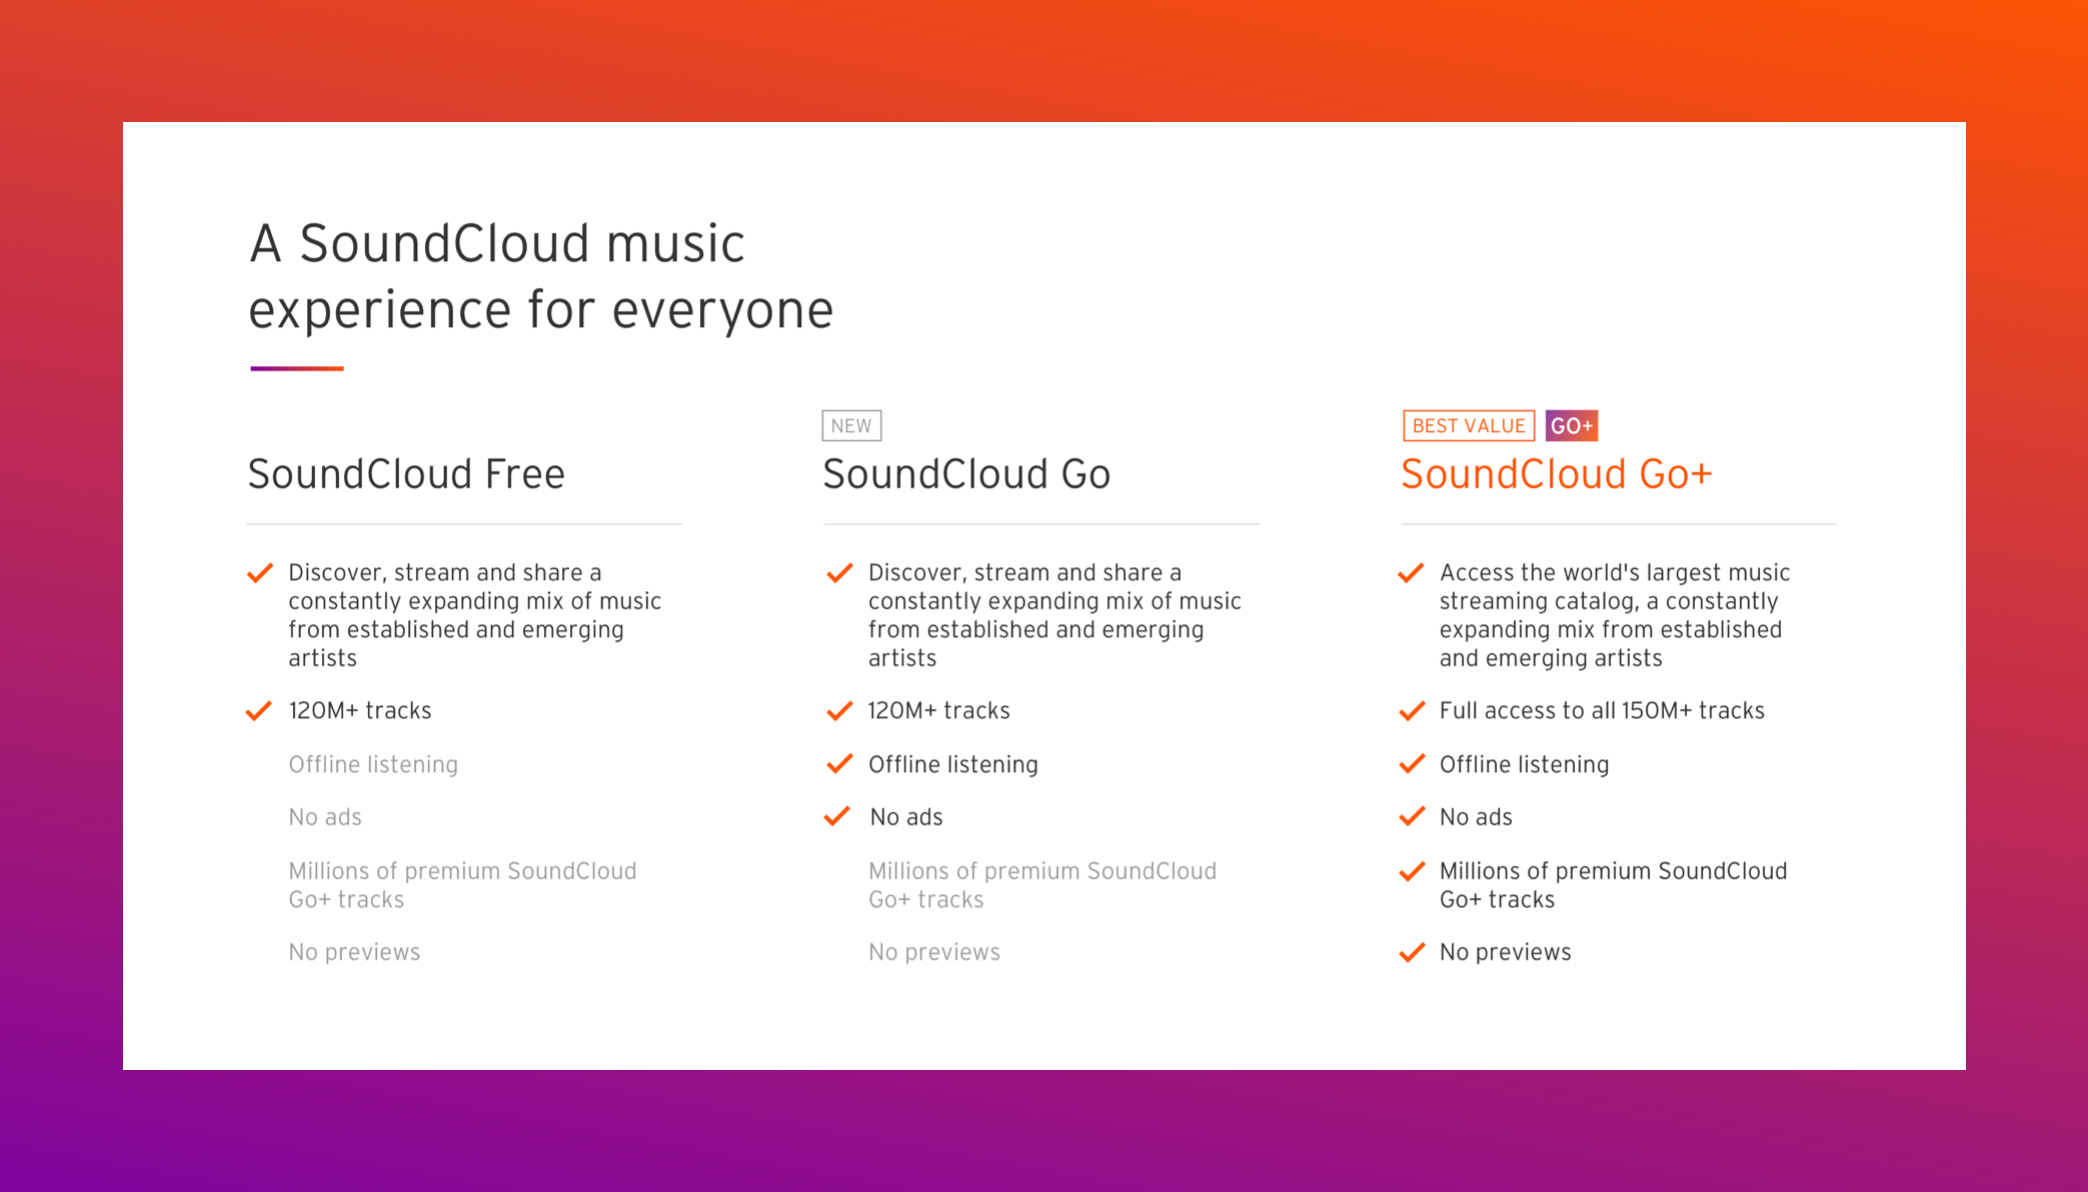 SoundCloud launches budget plan to attract paying subscribers